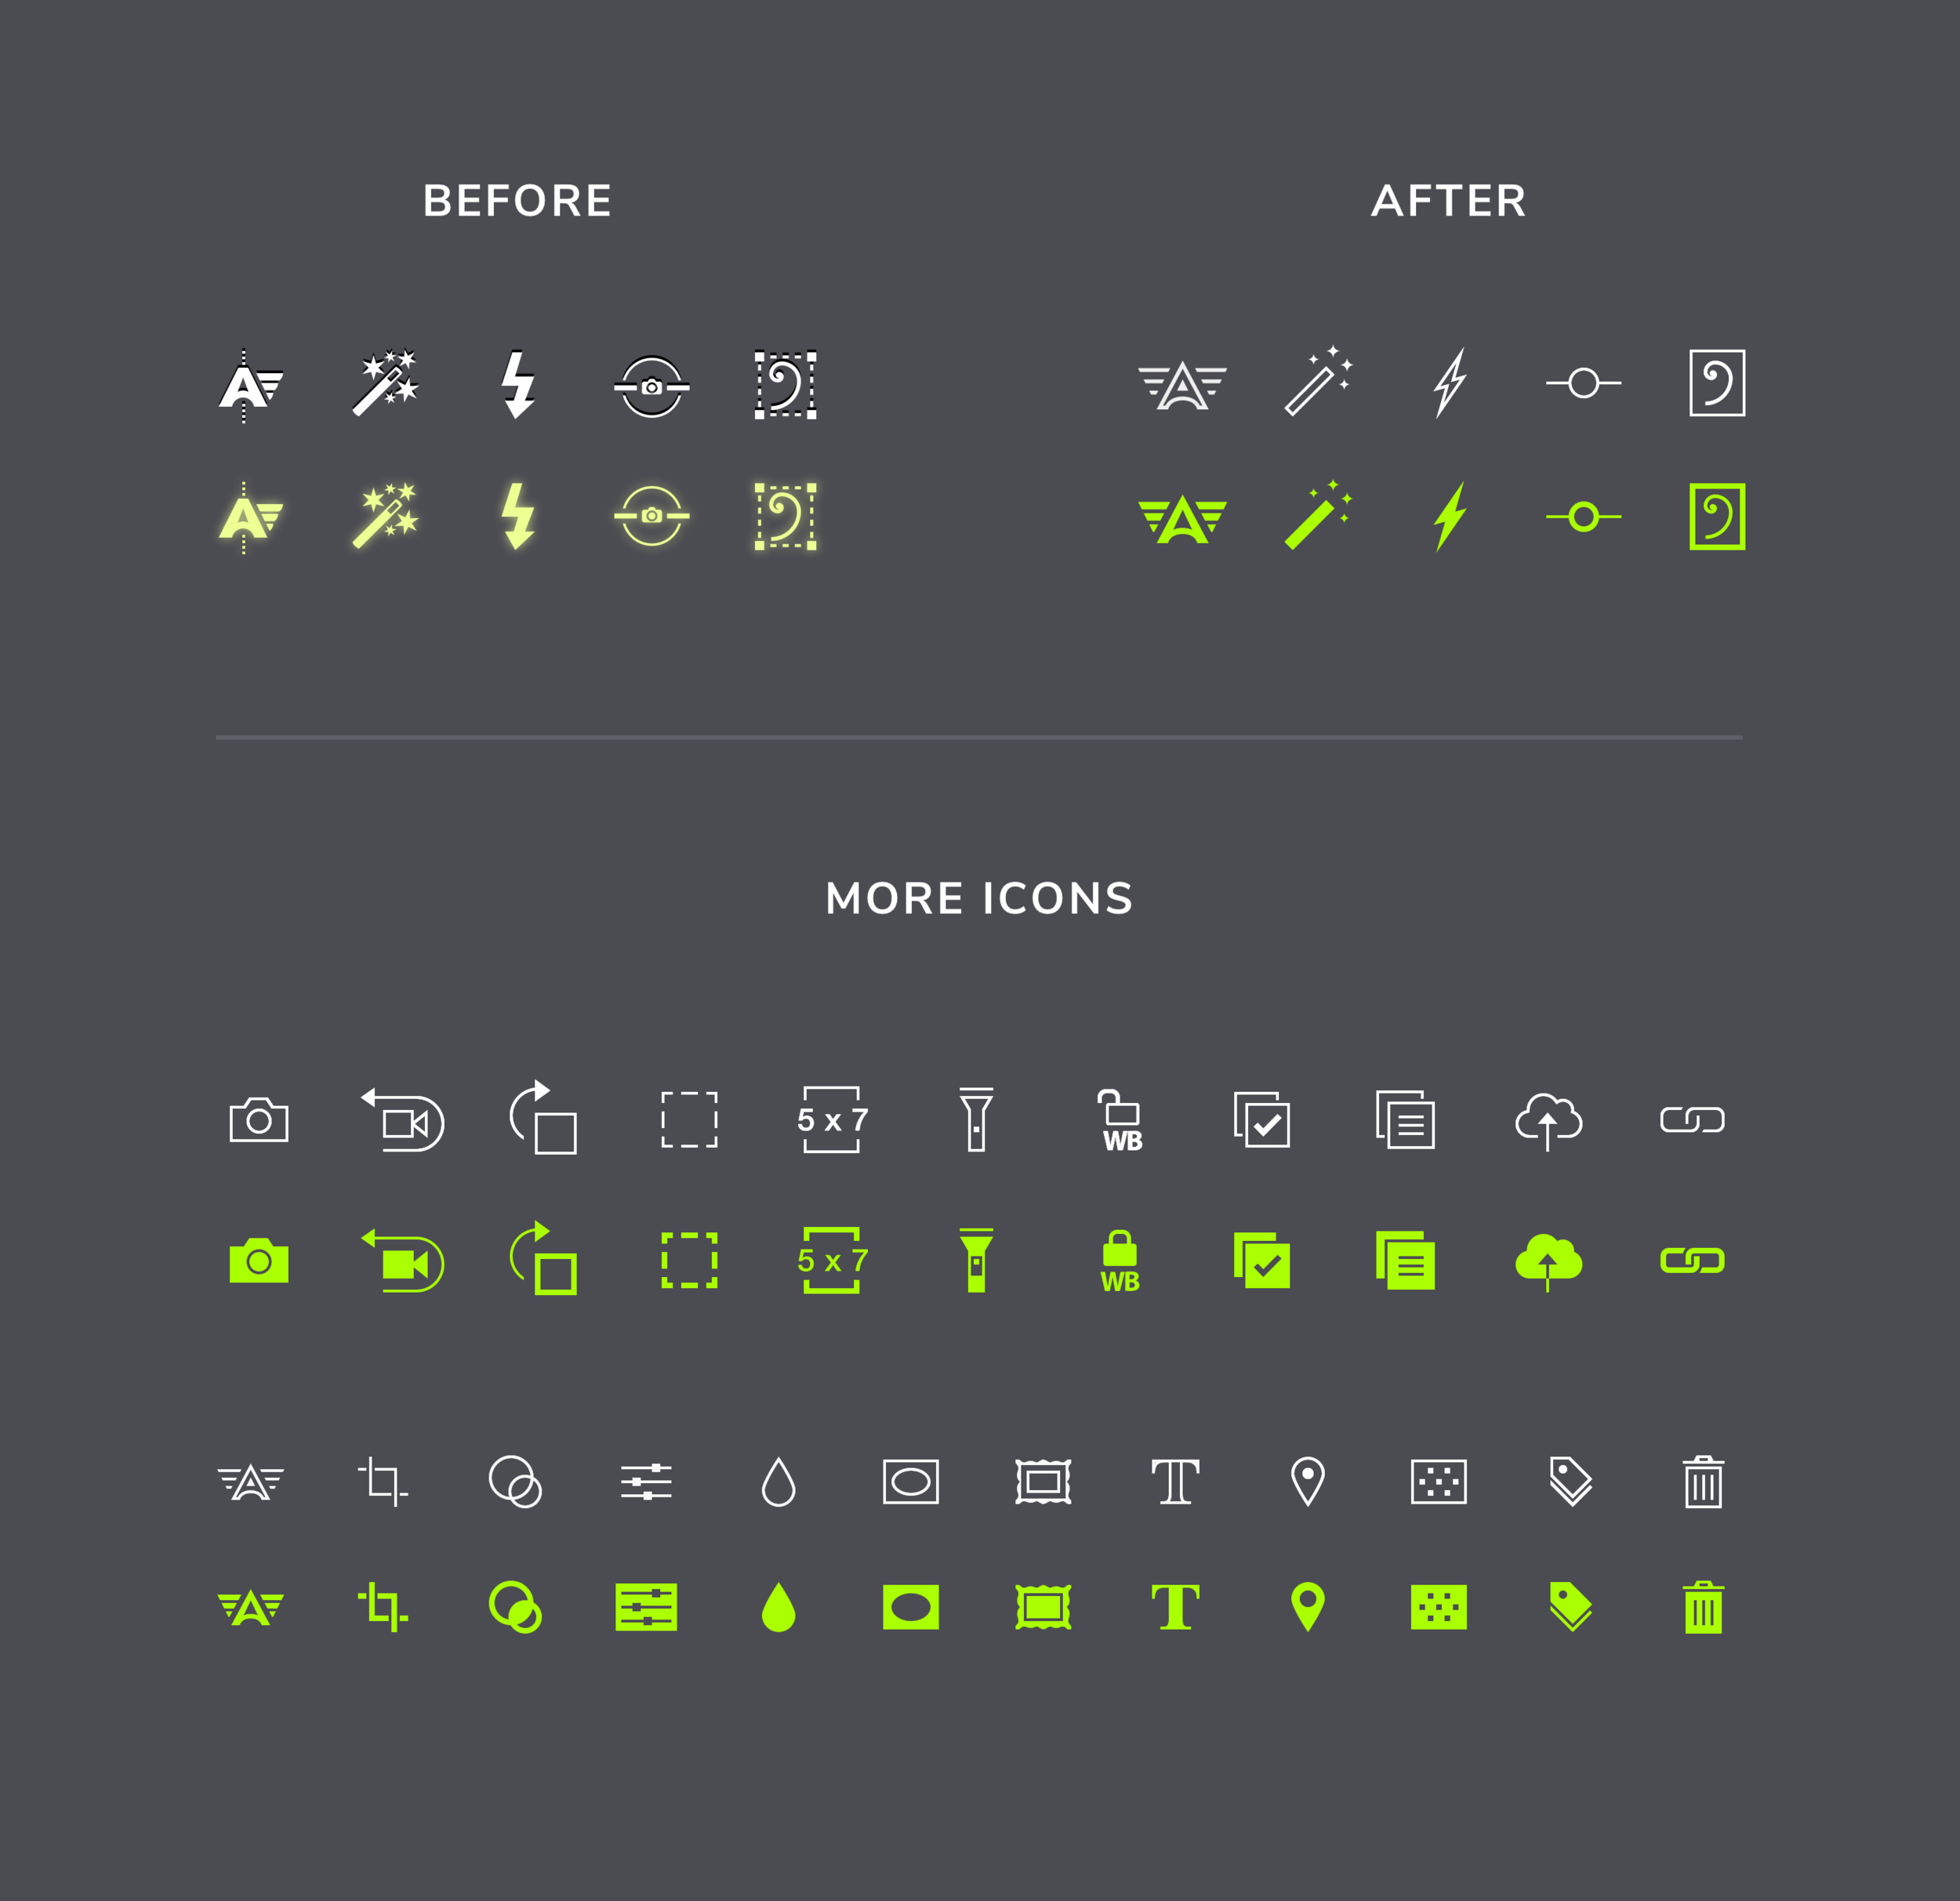 icons copy 2.png